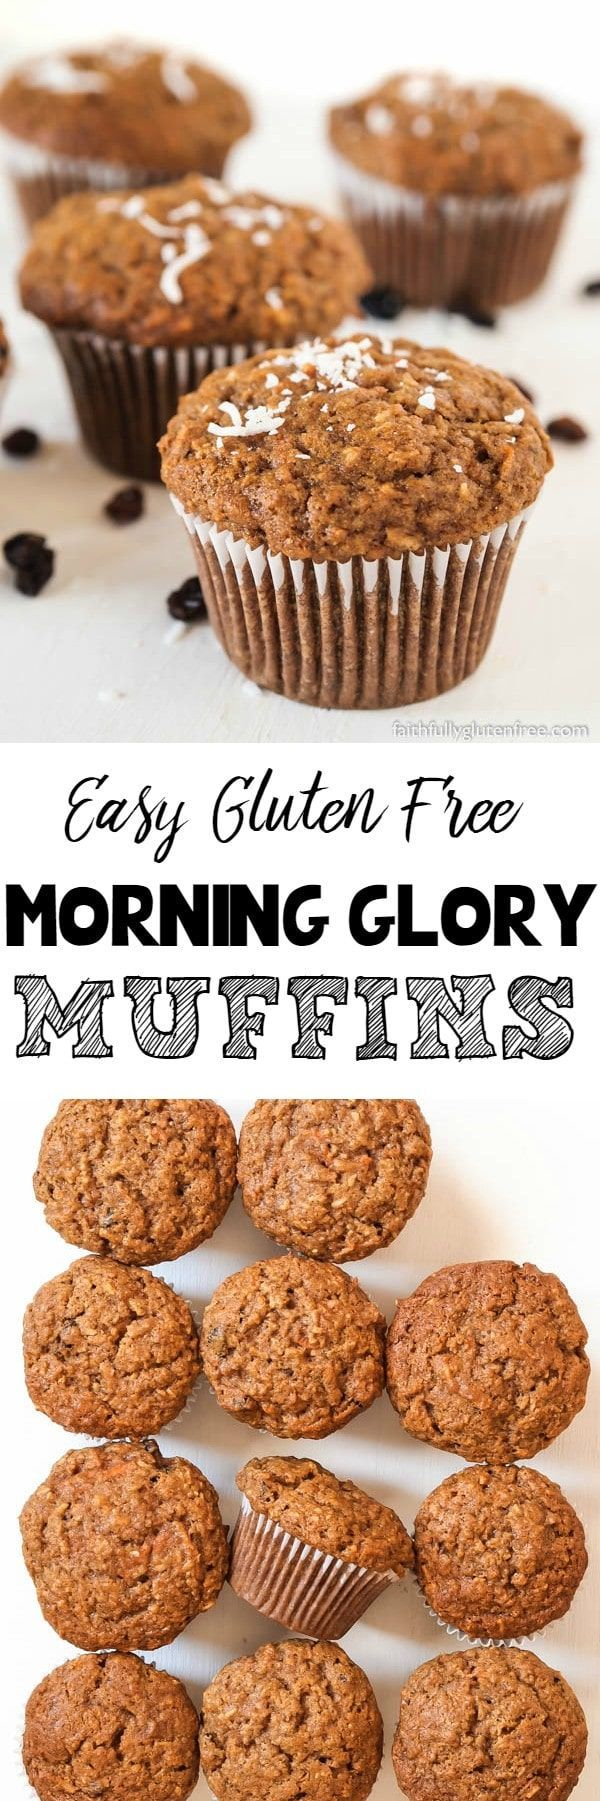 Enjoy these Gluten Free Morning Glory Muffins with a hot cup of coffee, or while you're in the car on the go. Loaded with carrots, raisins, nuts, coconut, apple and cinnamon, these muffins aren't only packed full of nutrients, they taste great too.